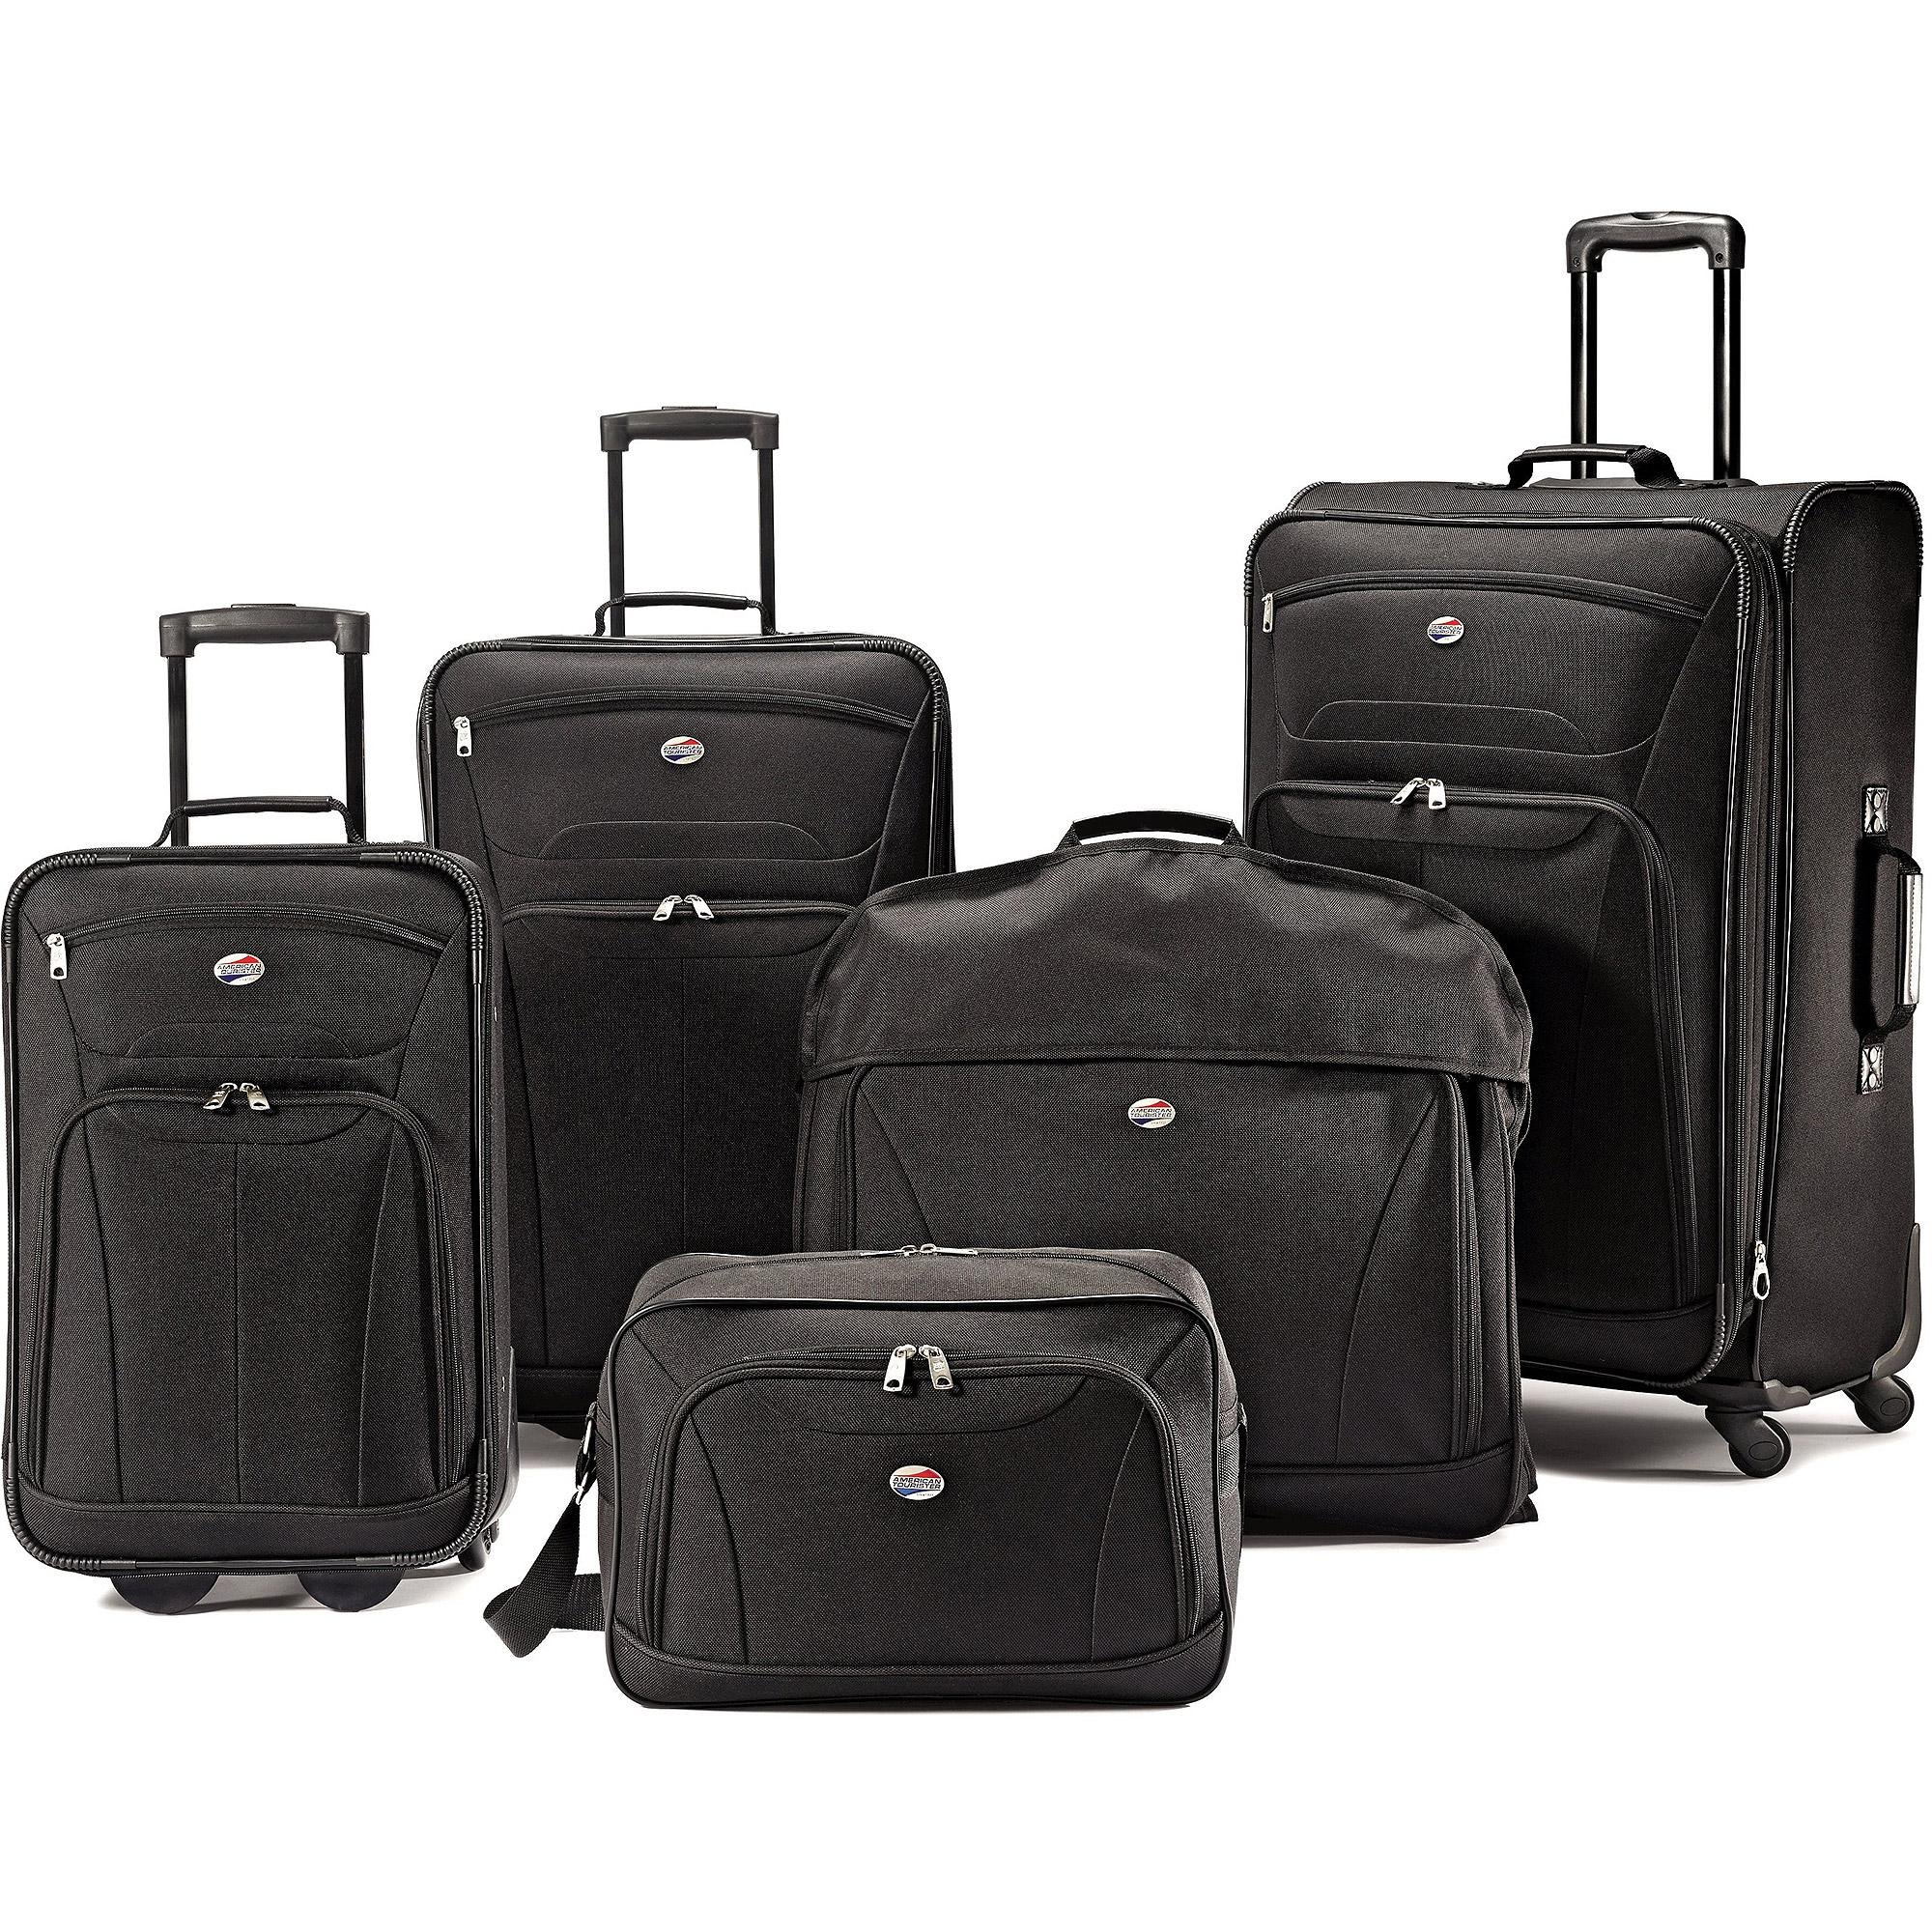 American Tourister 5-Piece Luggage Set, Black. Travel Luggage Includes Garment Bags. Luggage Sets SALE !! Heavy Duty Carry On Bag and Rolling Suitcase Set. Ideal For Travel.